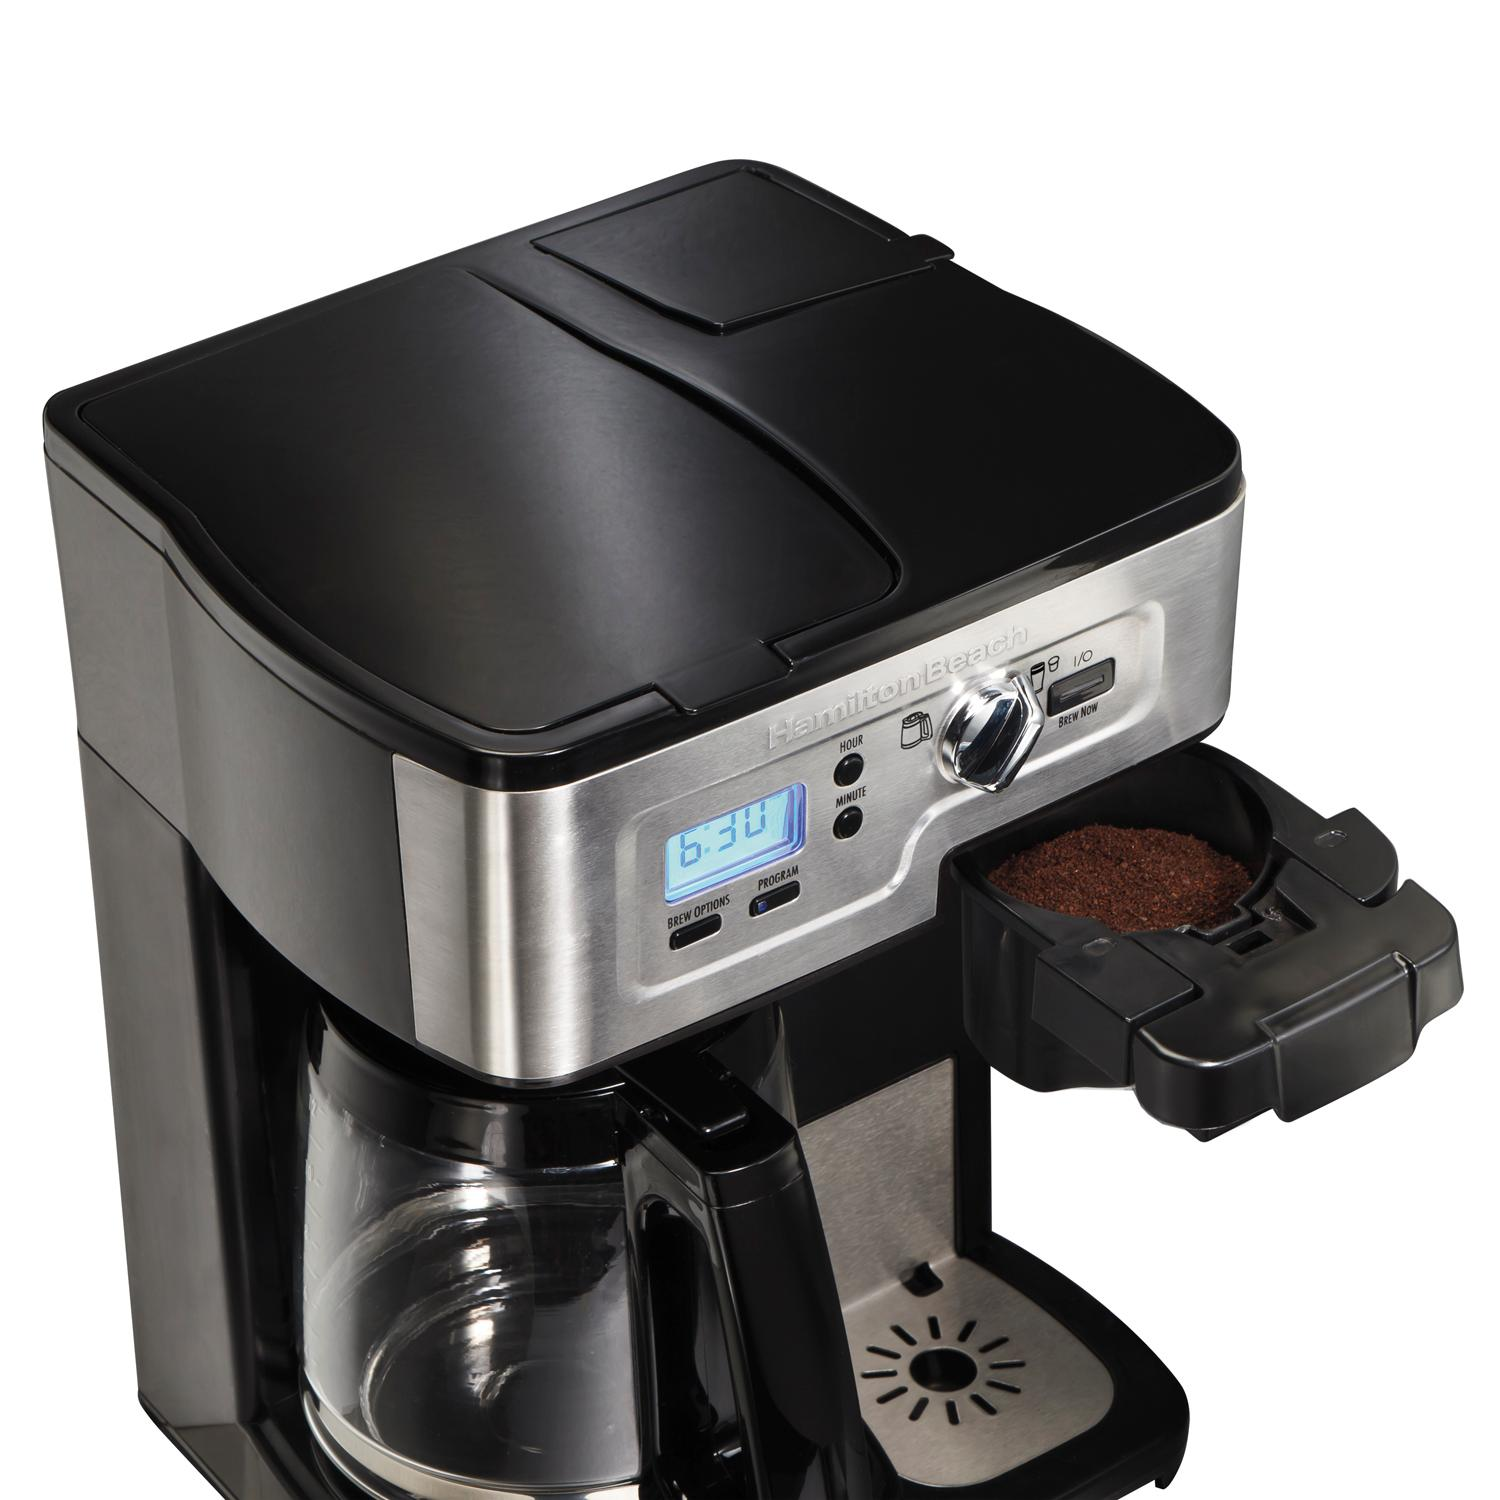 Single Serve Coffee Maker That Uses Ground Coffee : coffee maker k cup cups kcups keurig makers machine single serve one small mr. programmable